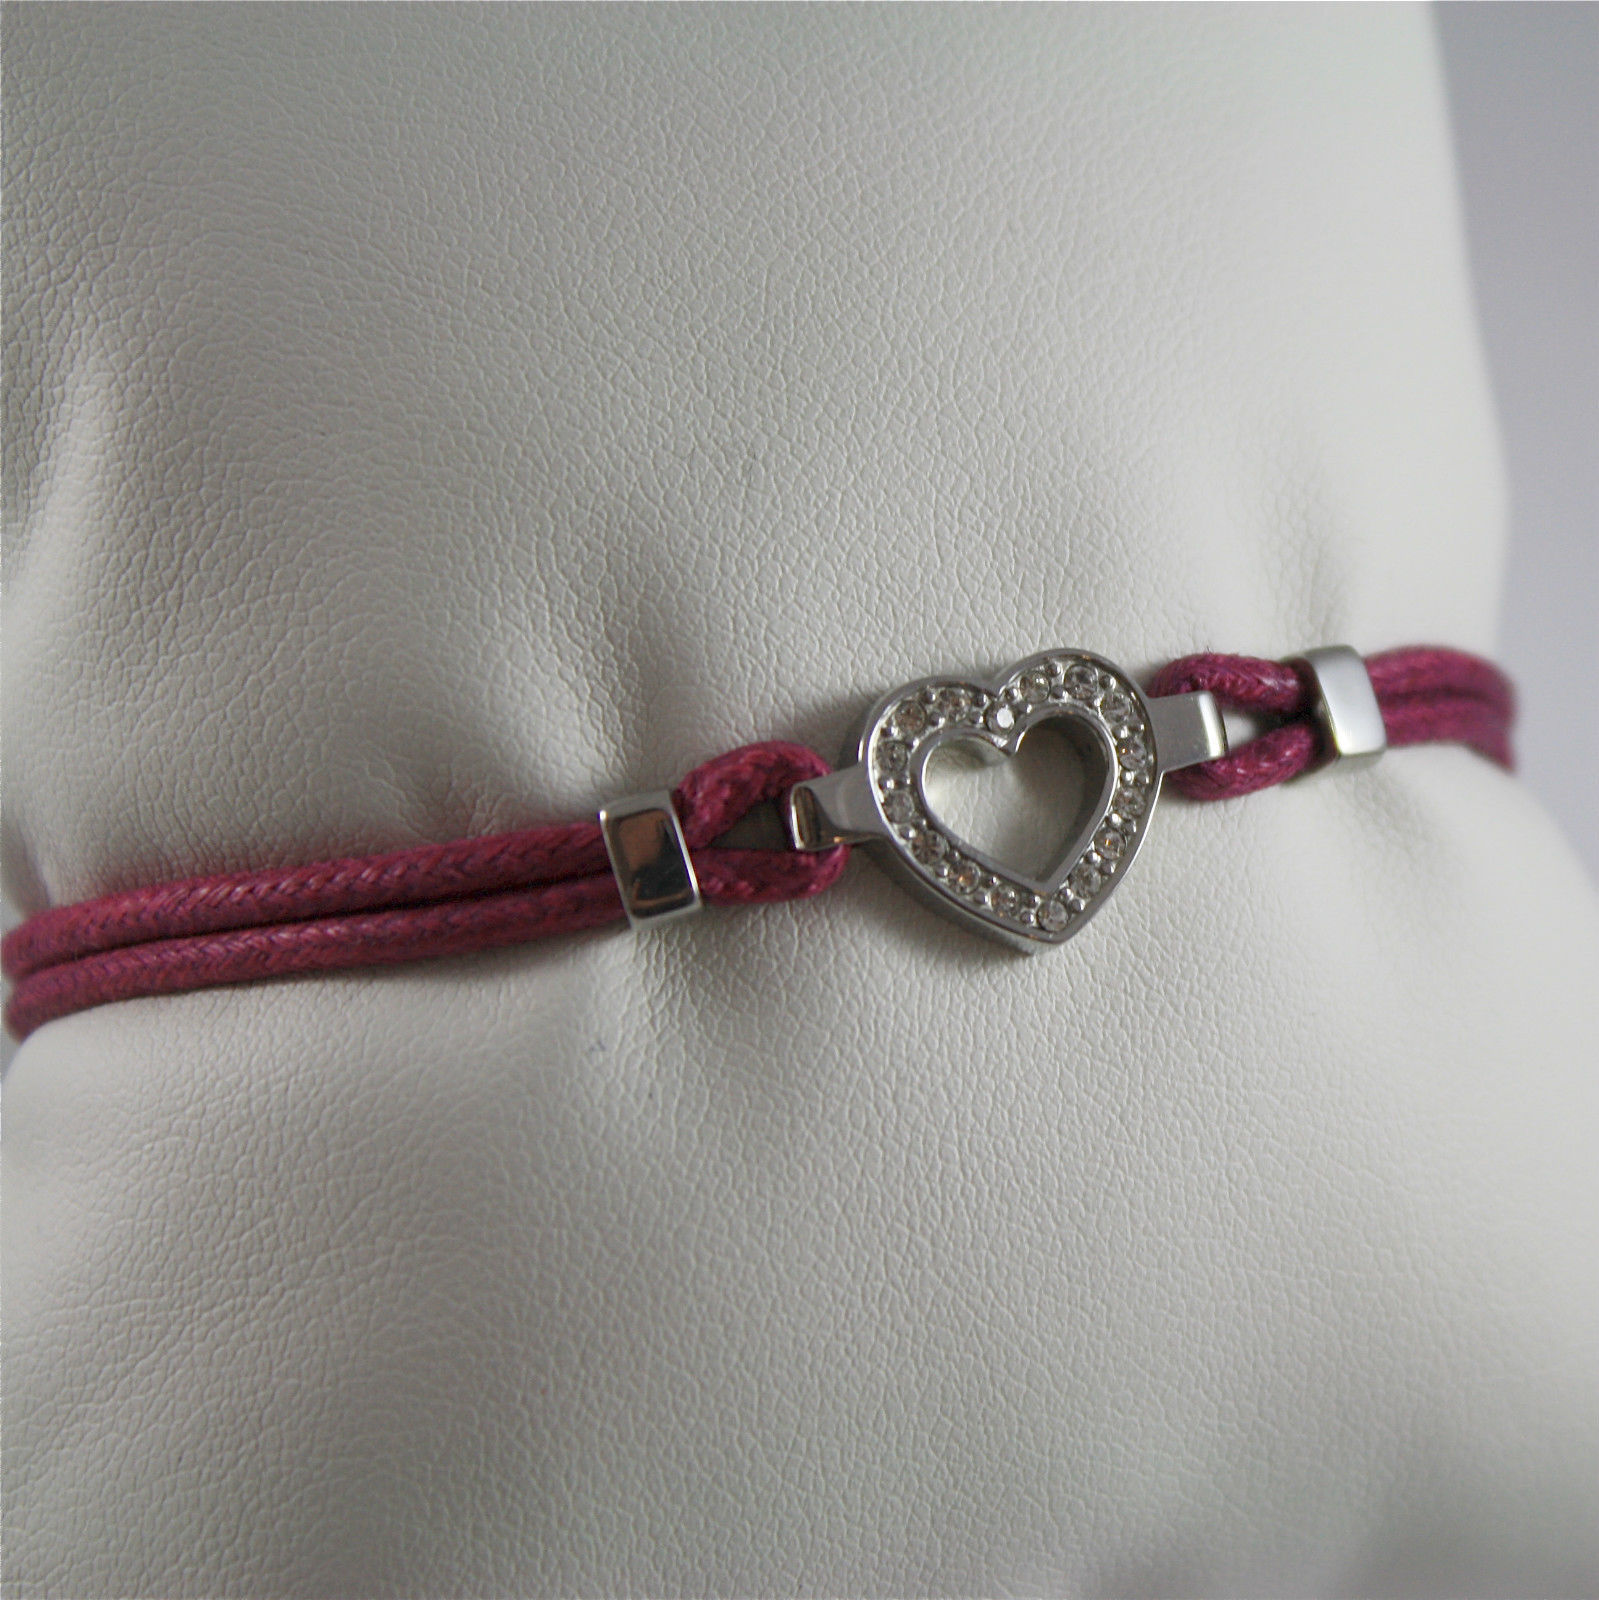 S'AGAPO' BRACELET, 316L STEEL, HEART, WAXED FUXIA COTTON, HEART, CRYSTALS.